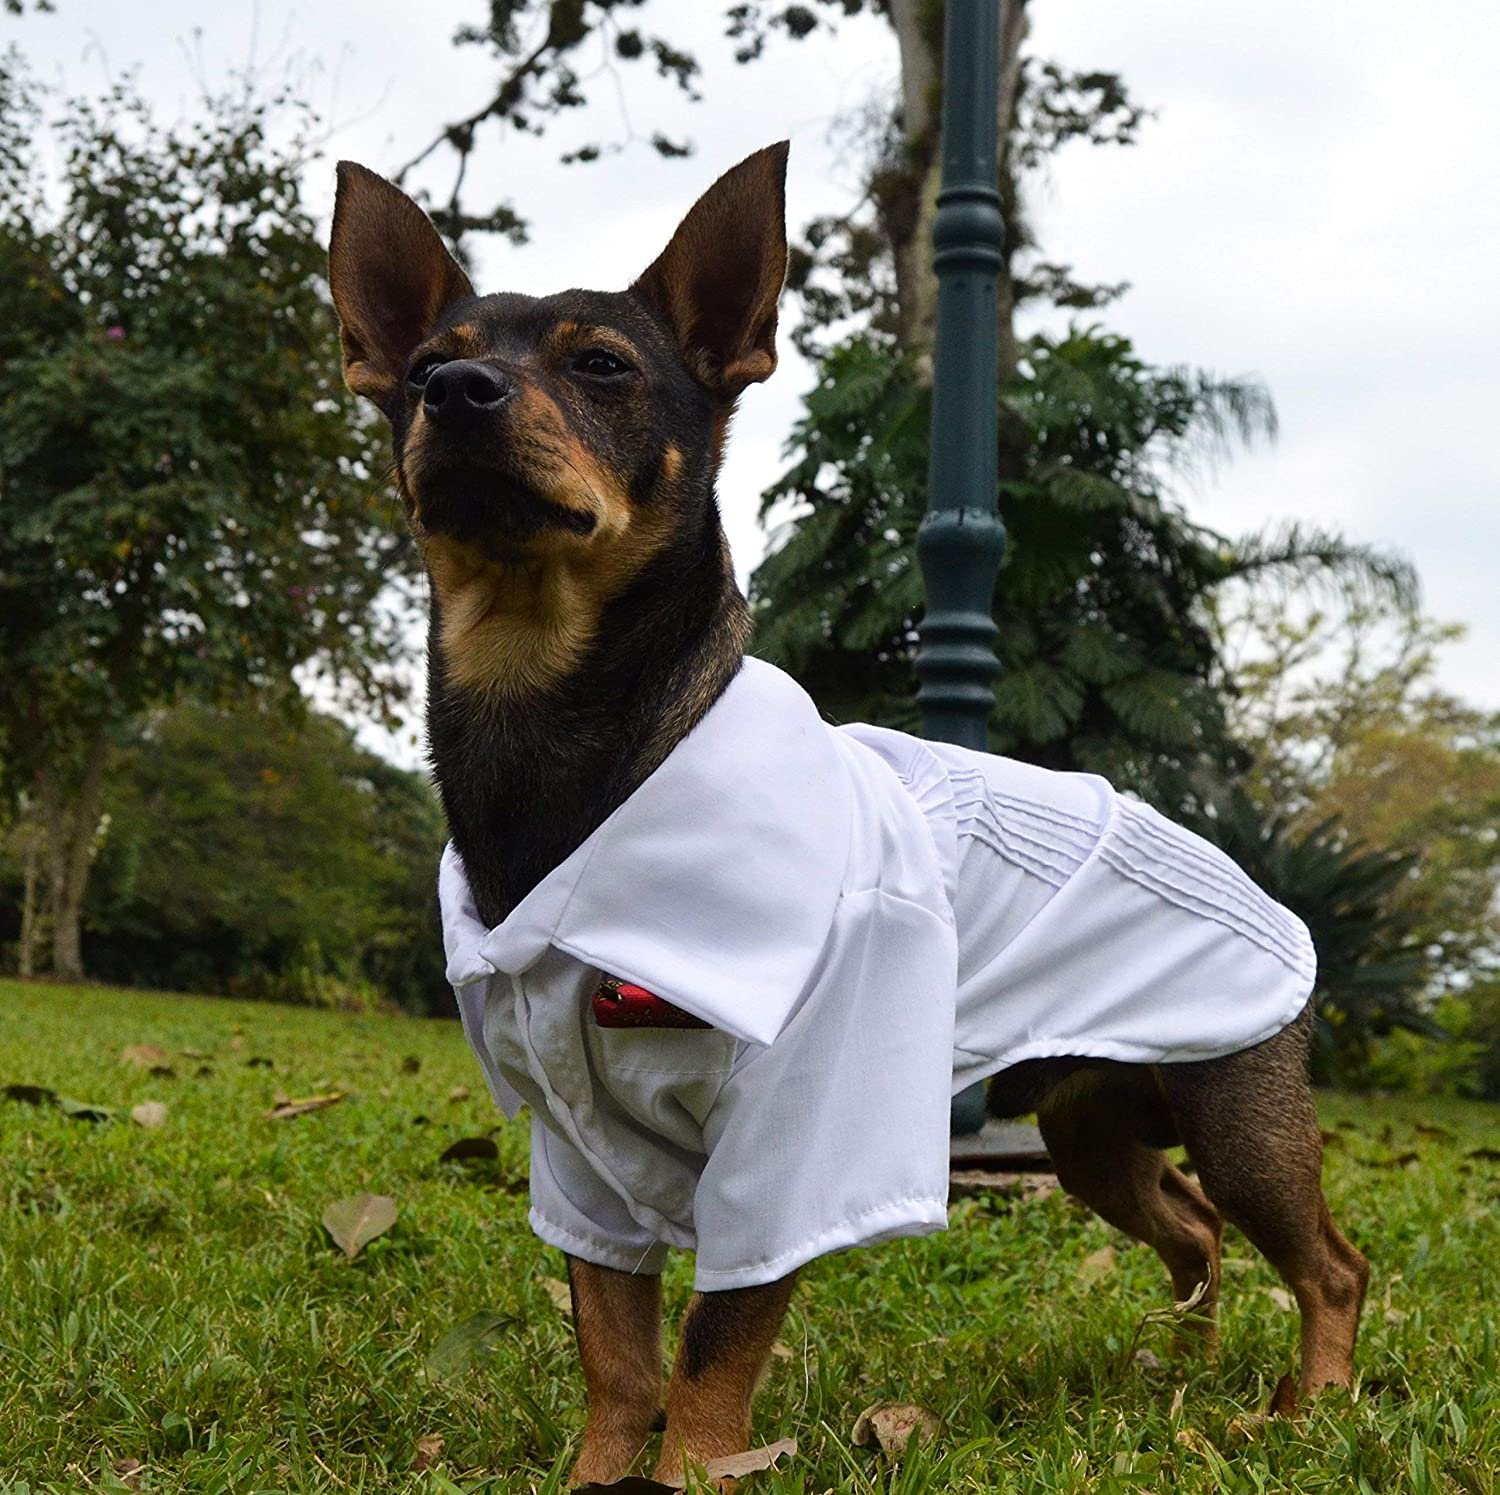 Guayabera jarocho personalized with name embroidered for pet